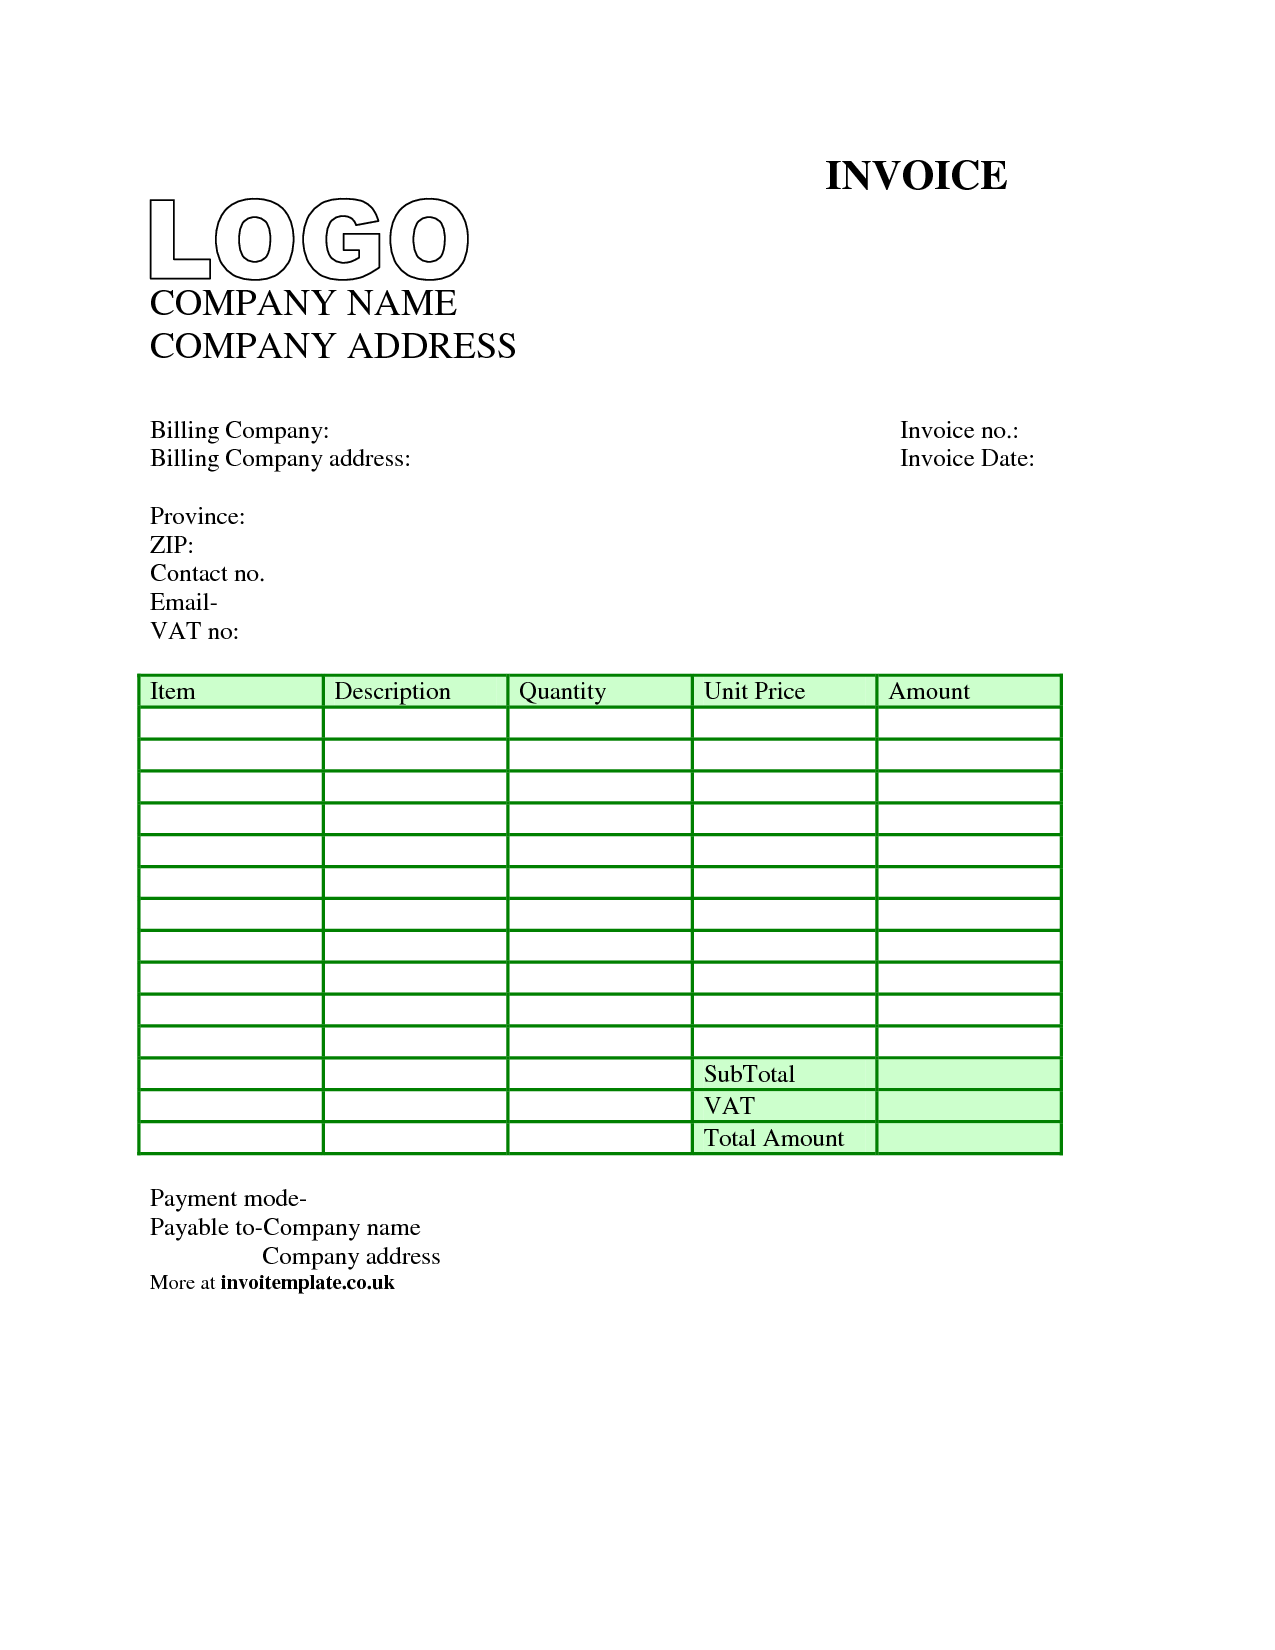 Invoice template uk word download invoice example for Word cannot open this document template